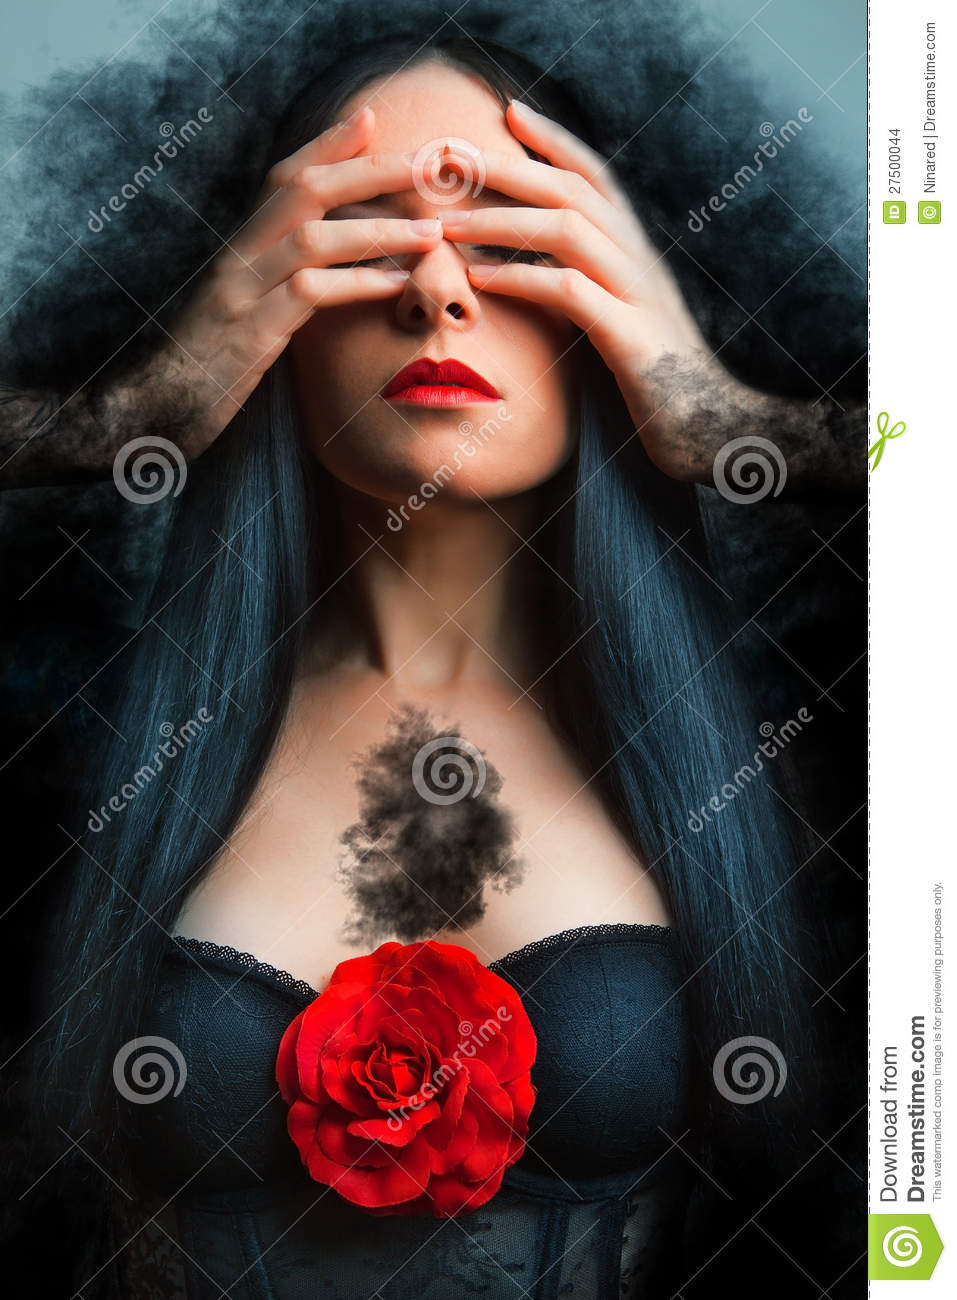 Photo of a gothic woman